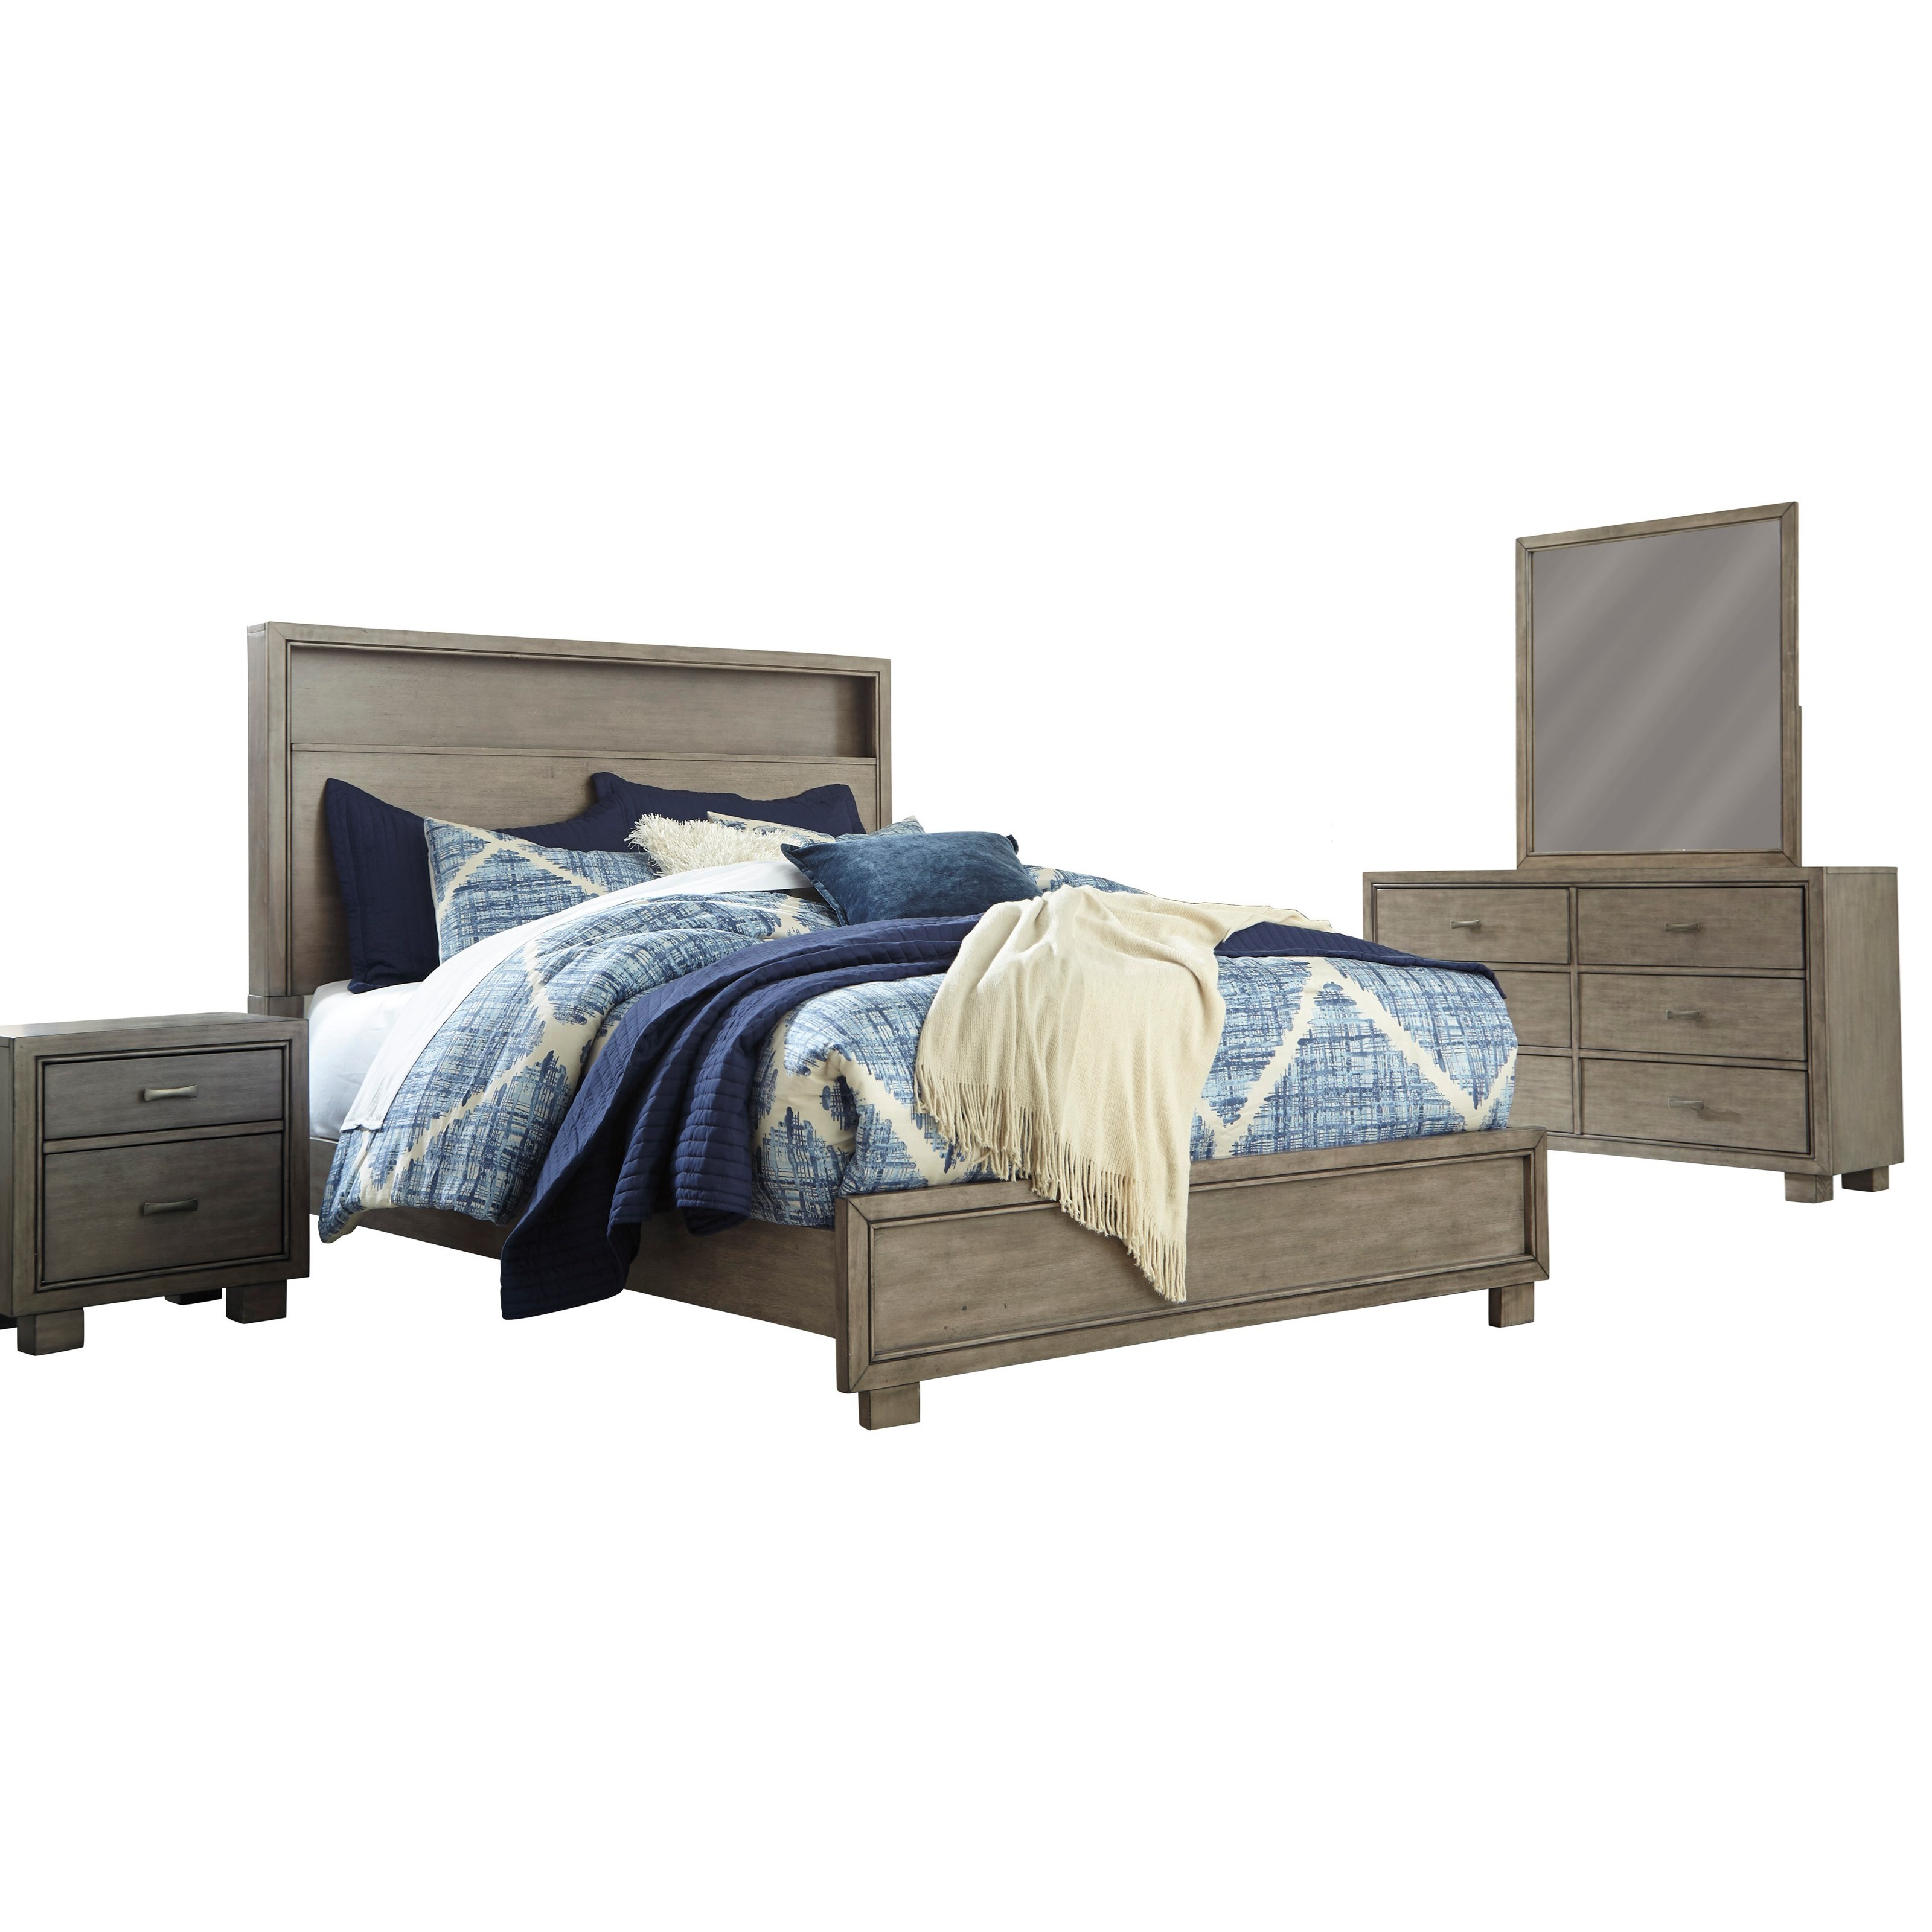 Arnett Queen Bedroom Group by Signature Design by Ashley at Catalog Outlet